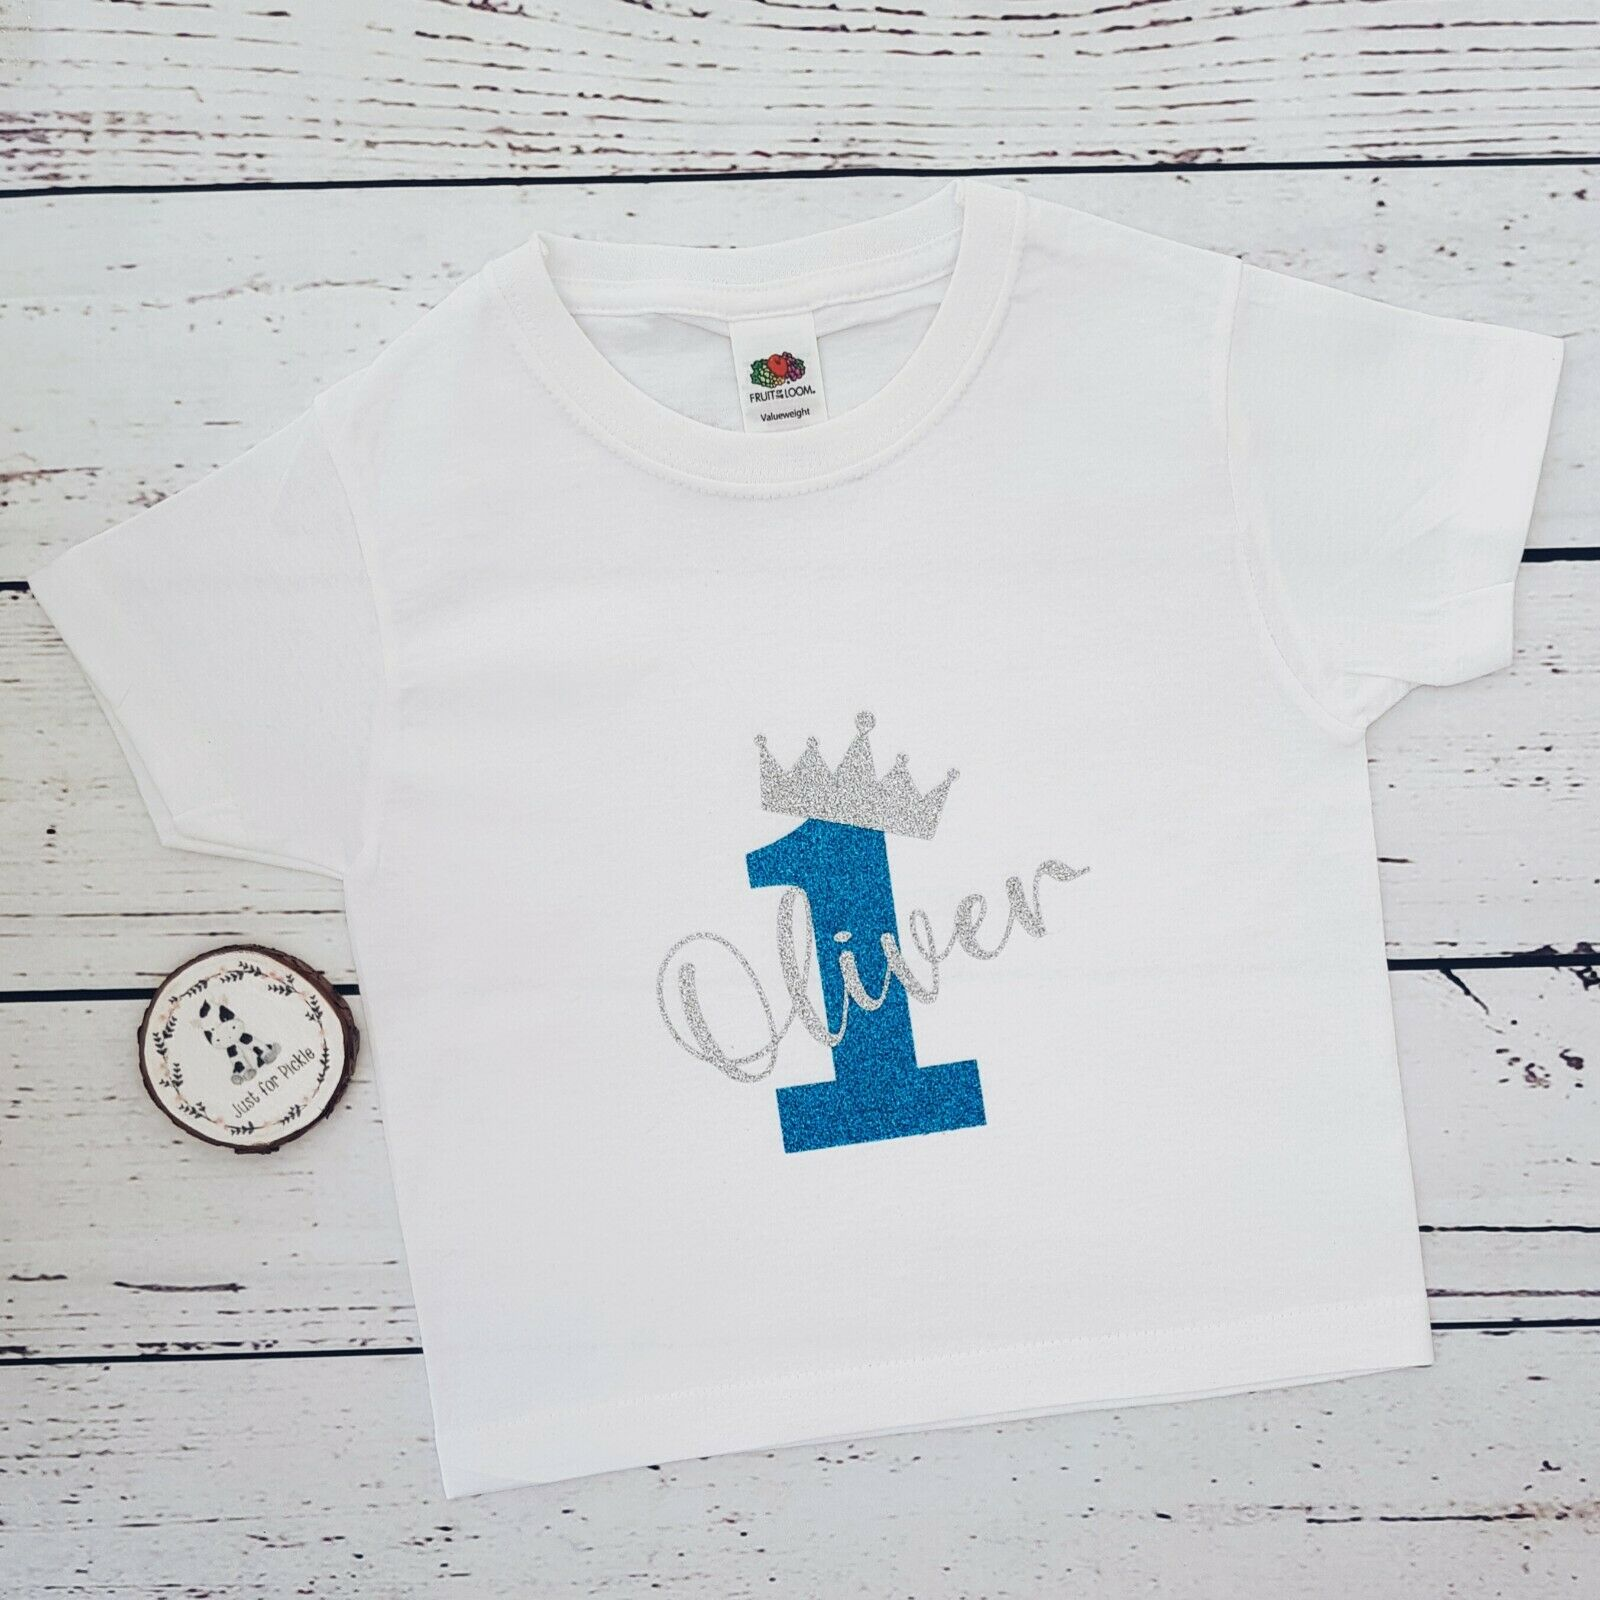 First Birthday Tee One Personalised Boys 1st Birthday T-Shirt Cake Smash Outfit, Name And Number 1 On Back Of Shirt 1st Birthday Gift